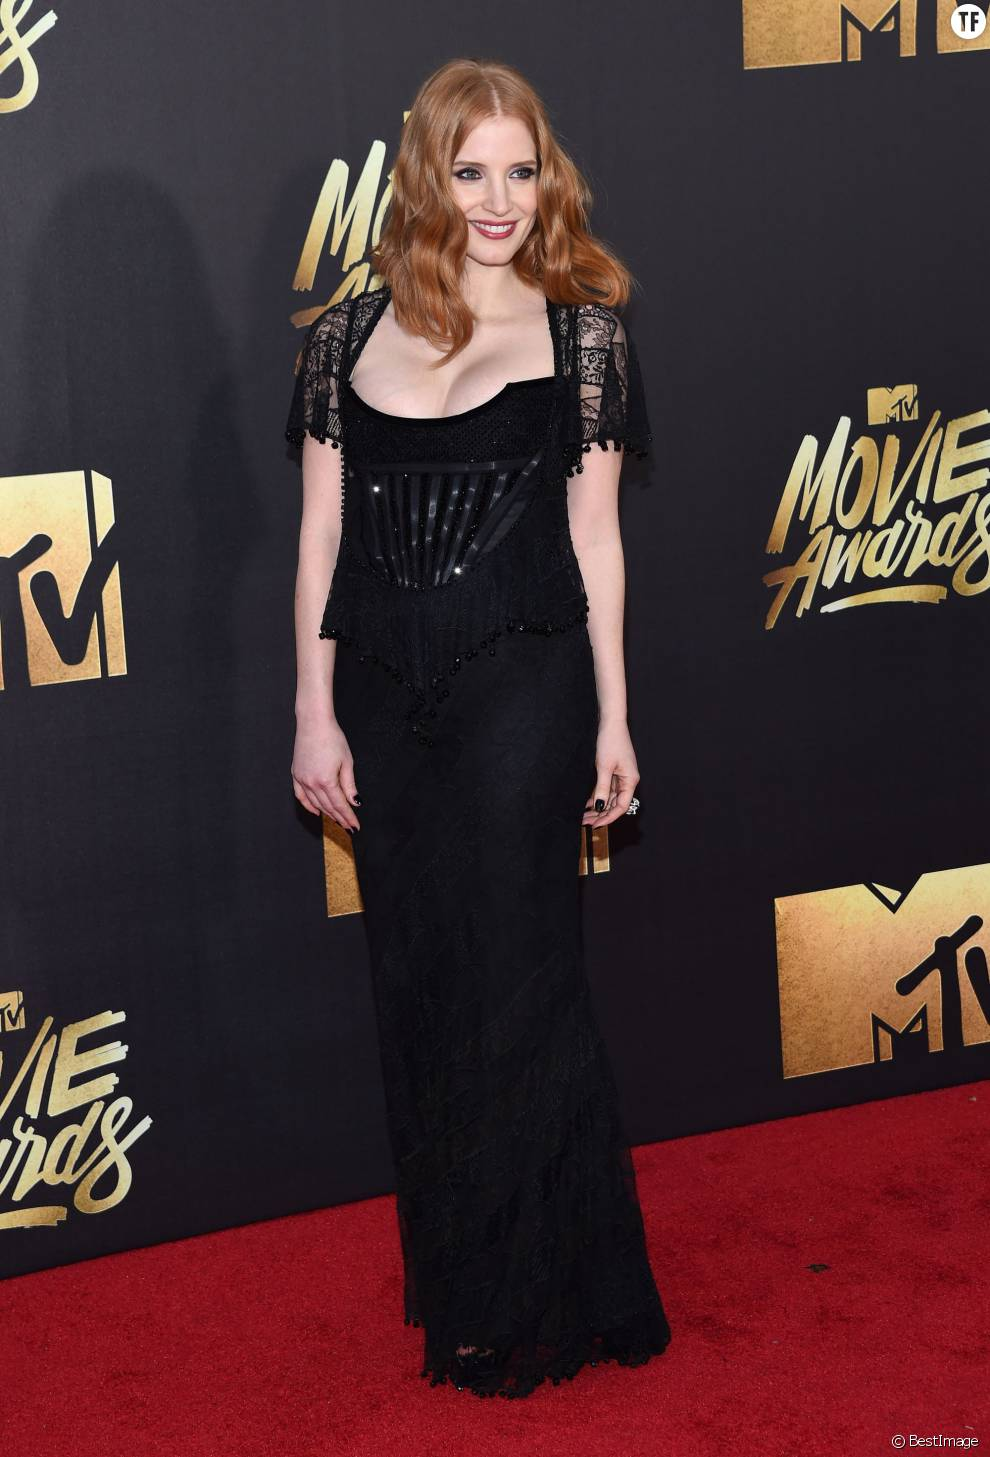 Jessica Chastain - Cérémonie des MTV Movie Awards 2016 à Los Angeles